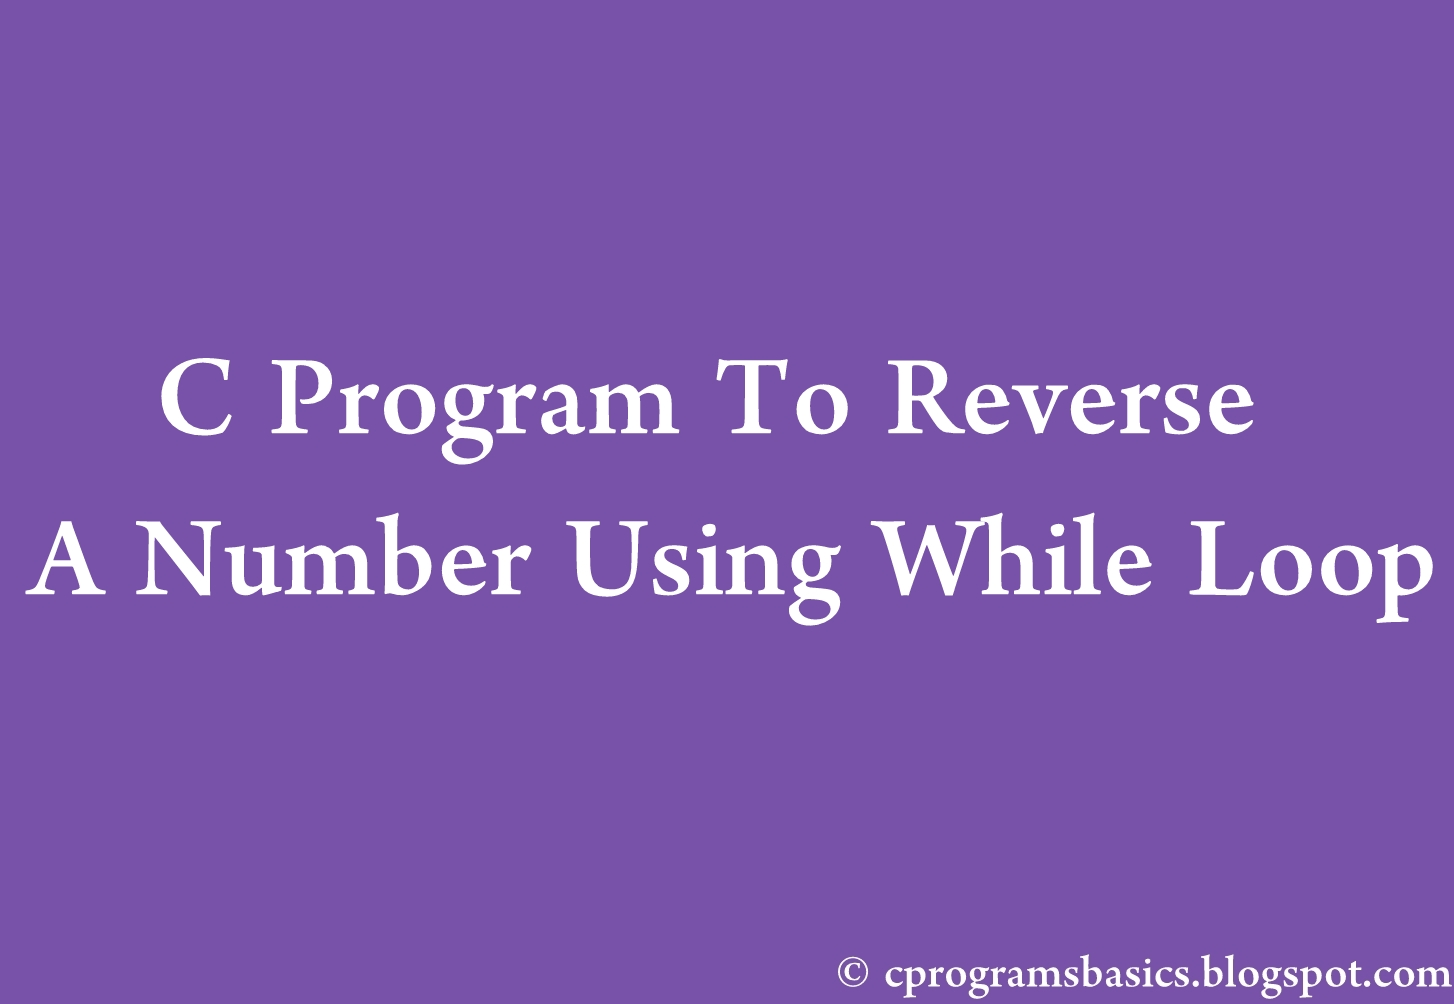 Program to find out whether a entered number is divisible by 3 and 5 or not